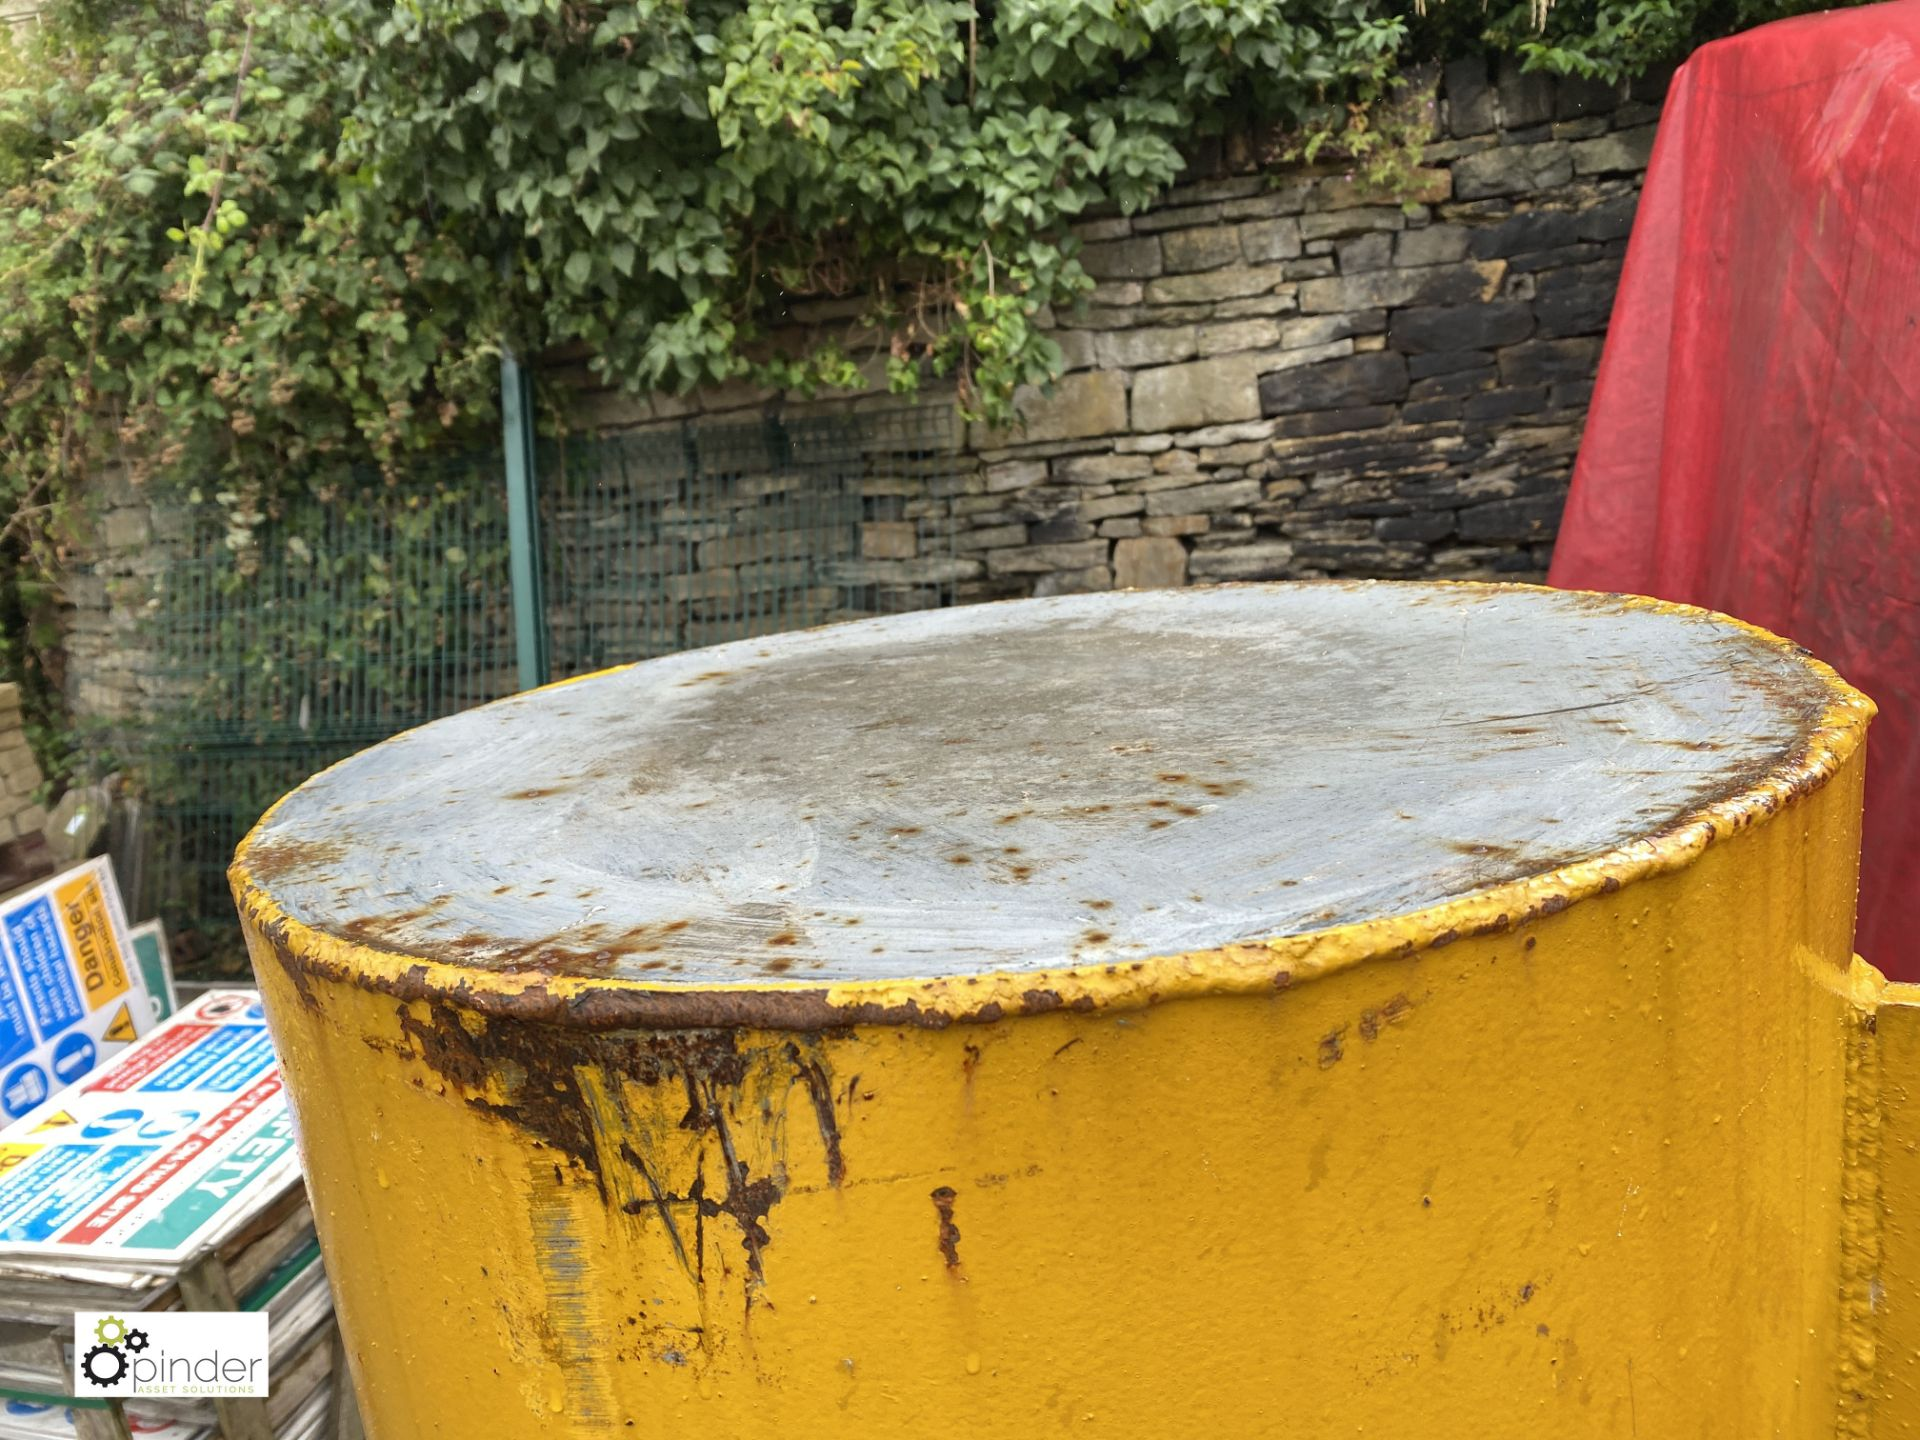 Forklift Truck Test Weight, 1250kg, approx. 1740mm x 600mm diameter (LOCATION: Station Lane) - Image 3 of 4